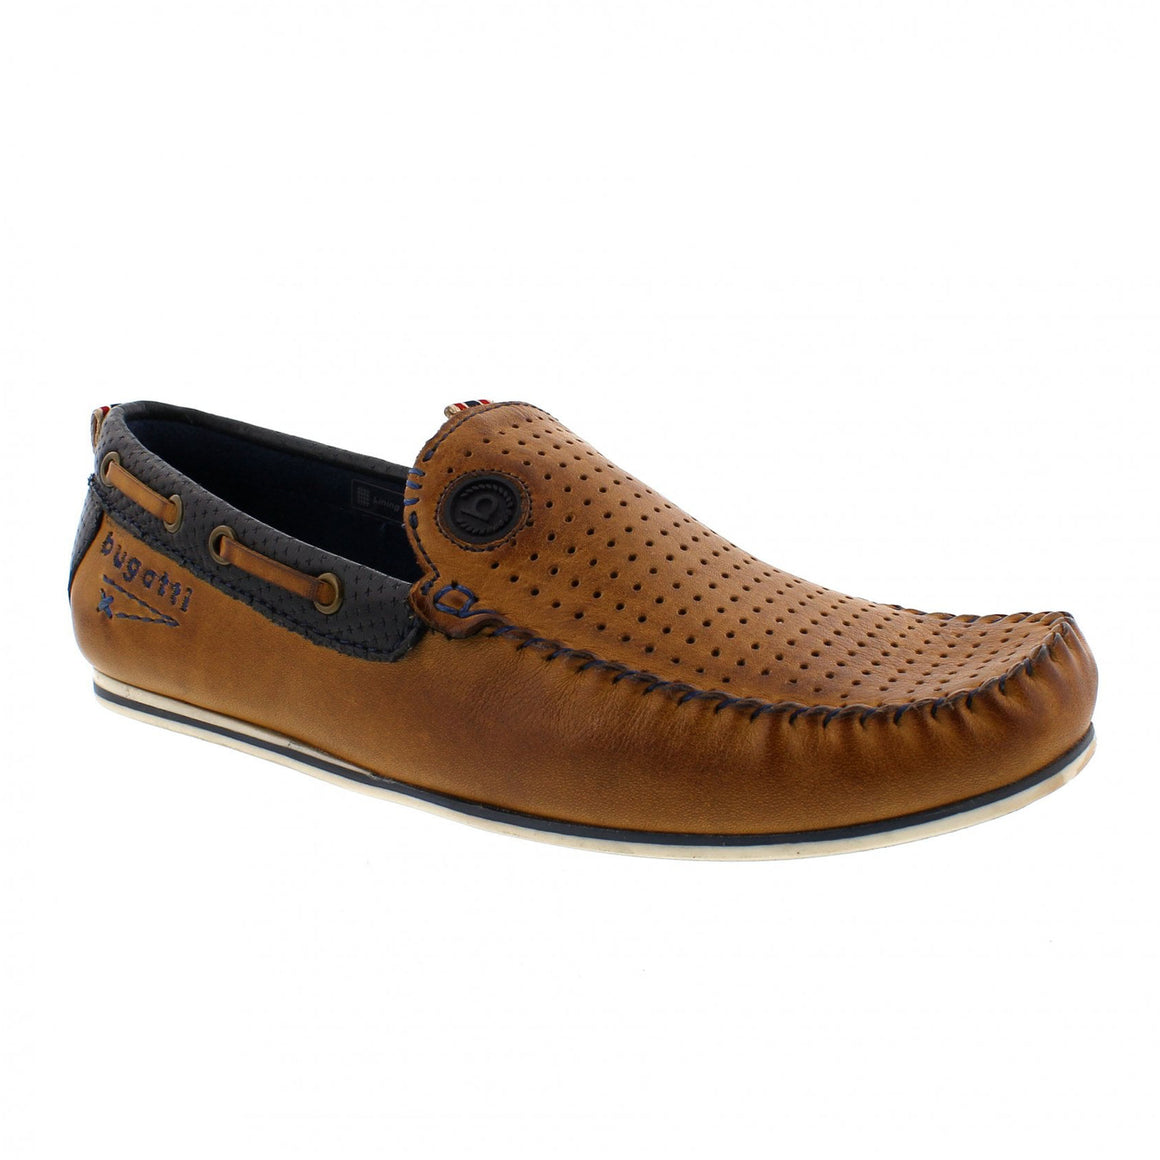 Cherokee 2 Shoes for Men in Navy/Tan Leather